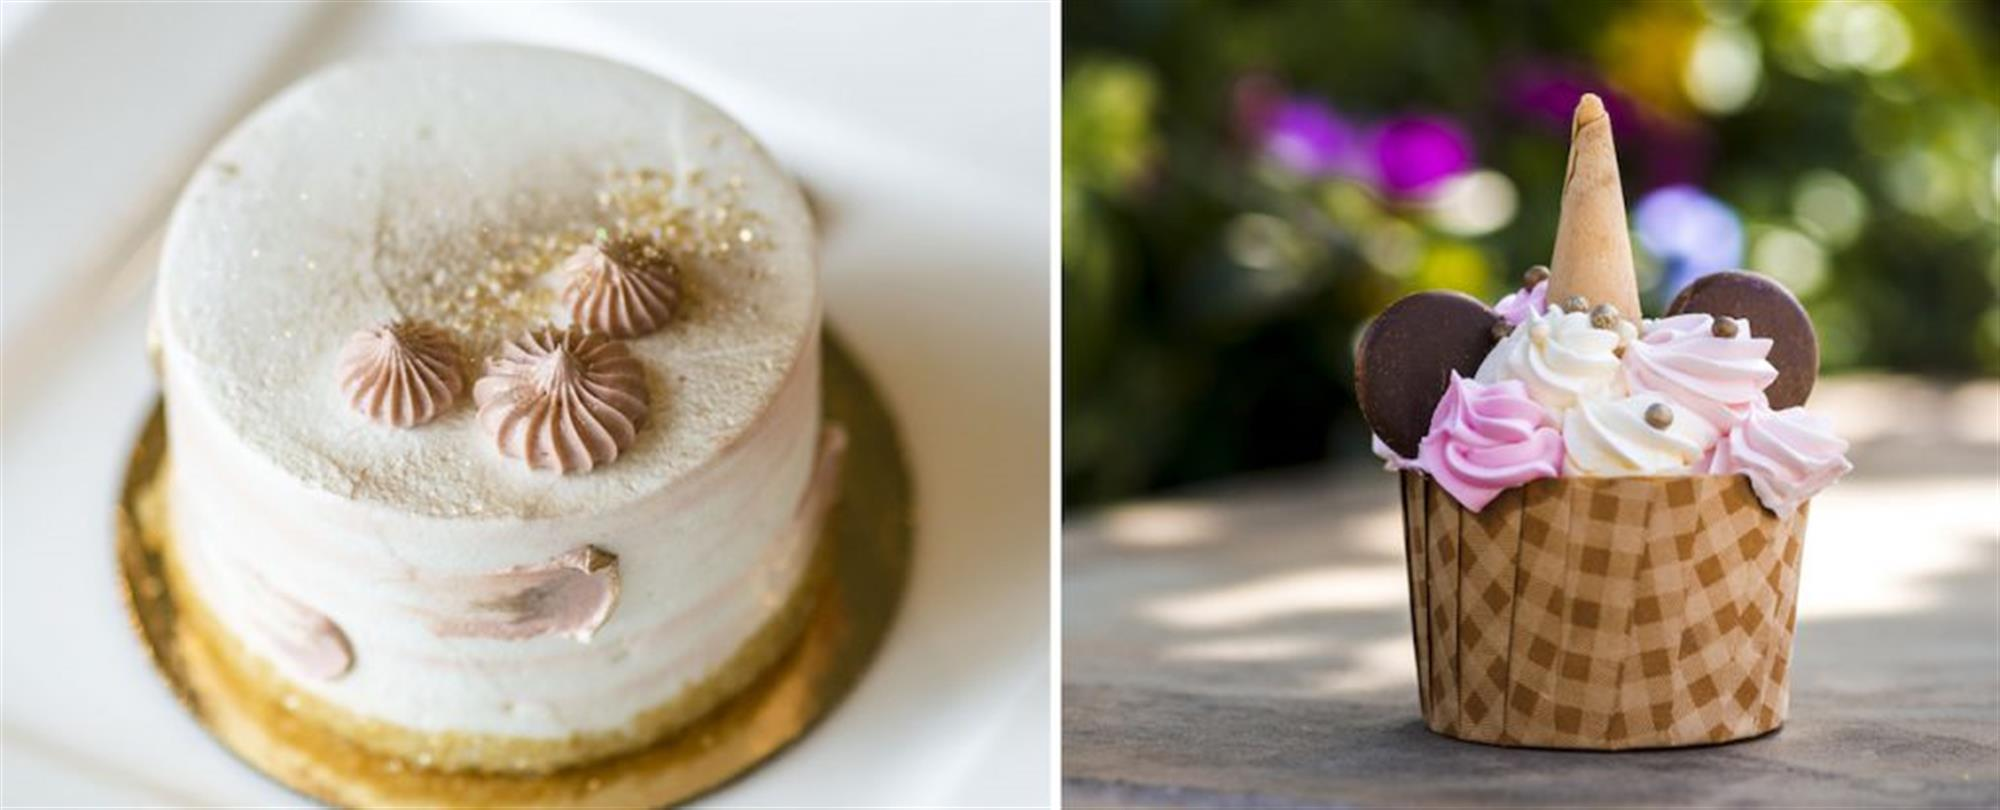 Briar Rose Gold Desserts at Walt Disney World Resort